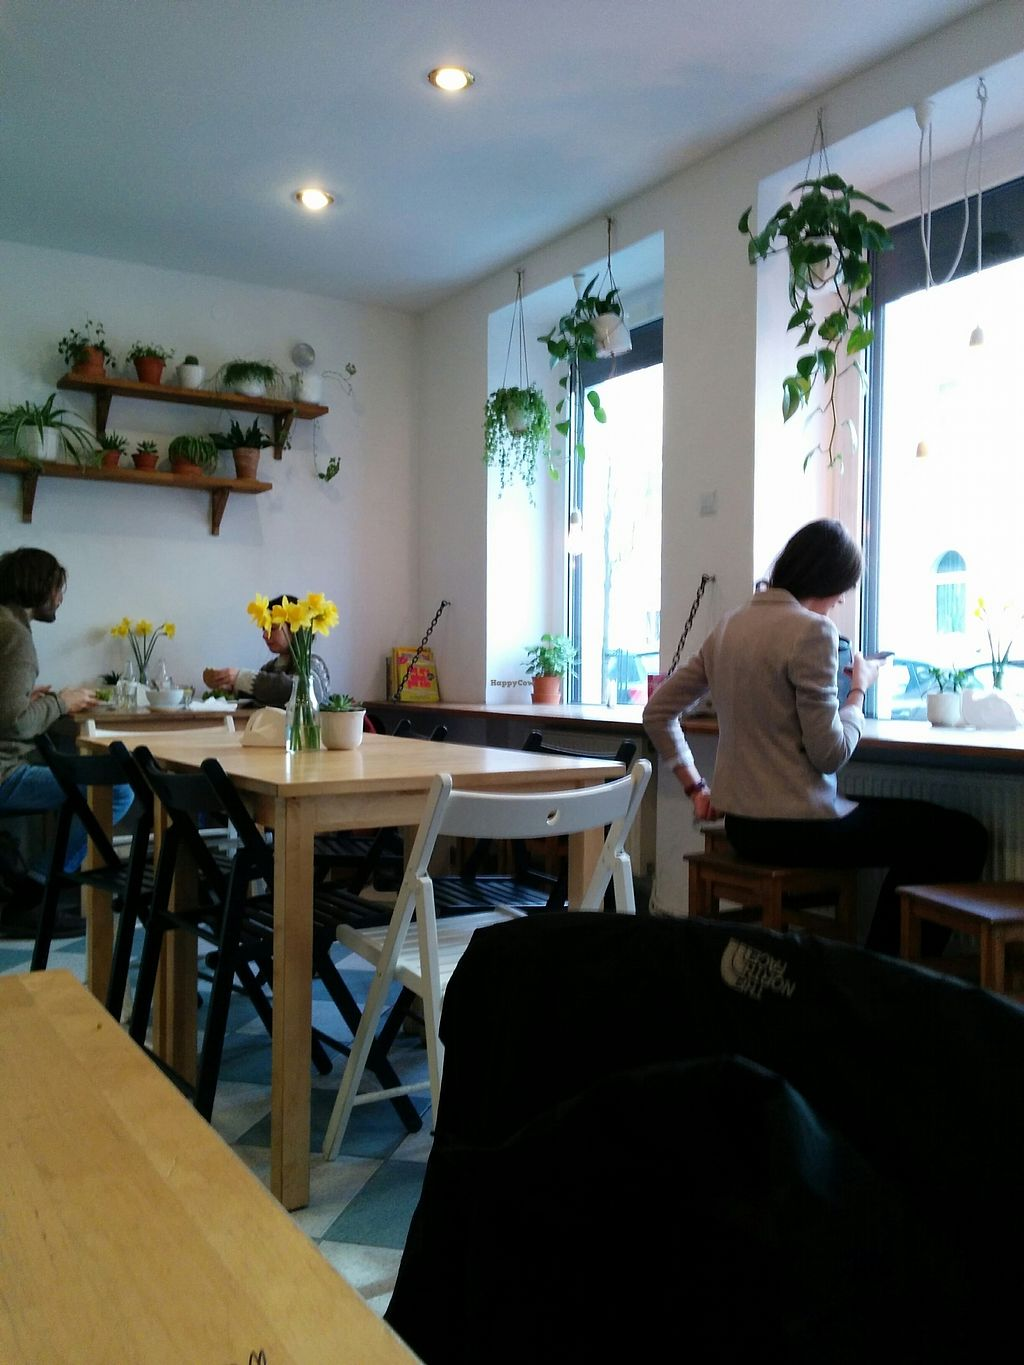 "Photo of Avocado Vegan Bistro - Wajdeloty  by <a href=""/members/profile/CLRtraveller"">CLRtraveller</a> <br/>interior <br/> February 24, 2018  - <a href='/contact/abuse/image/41675/363156'>Report</a>"